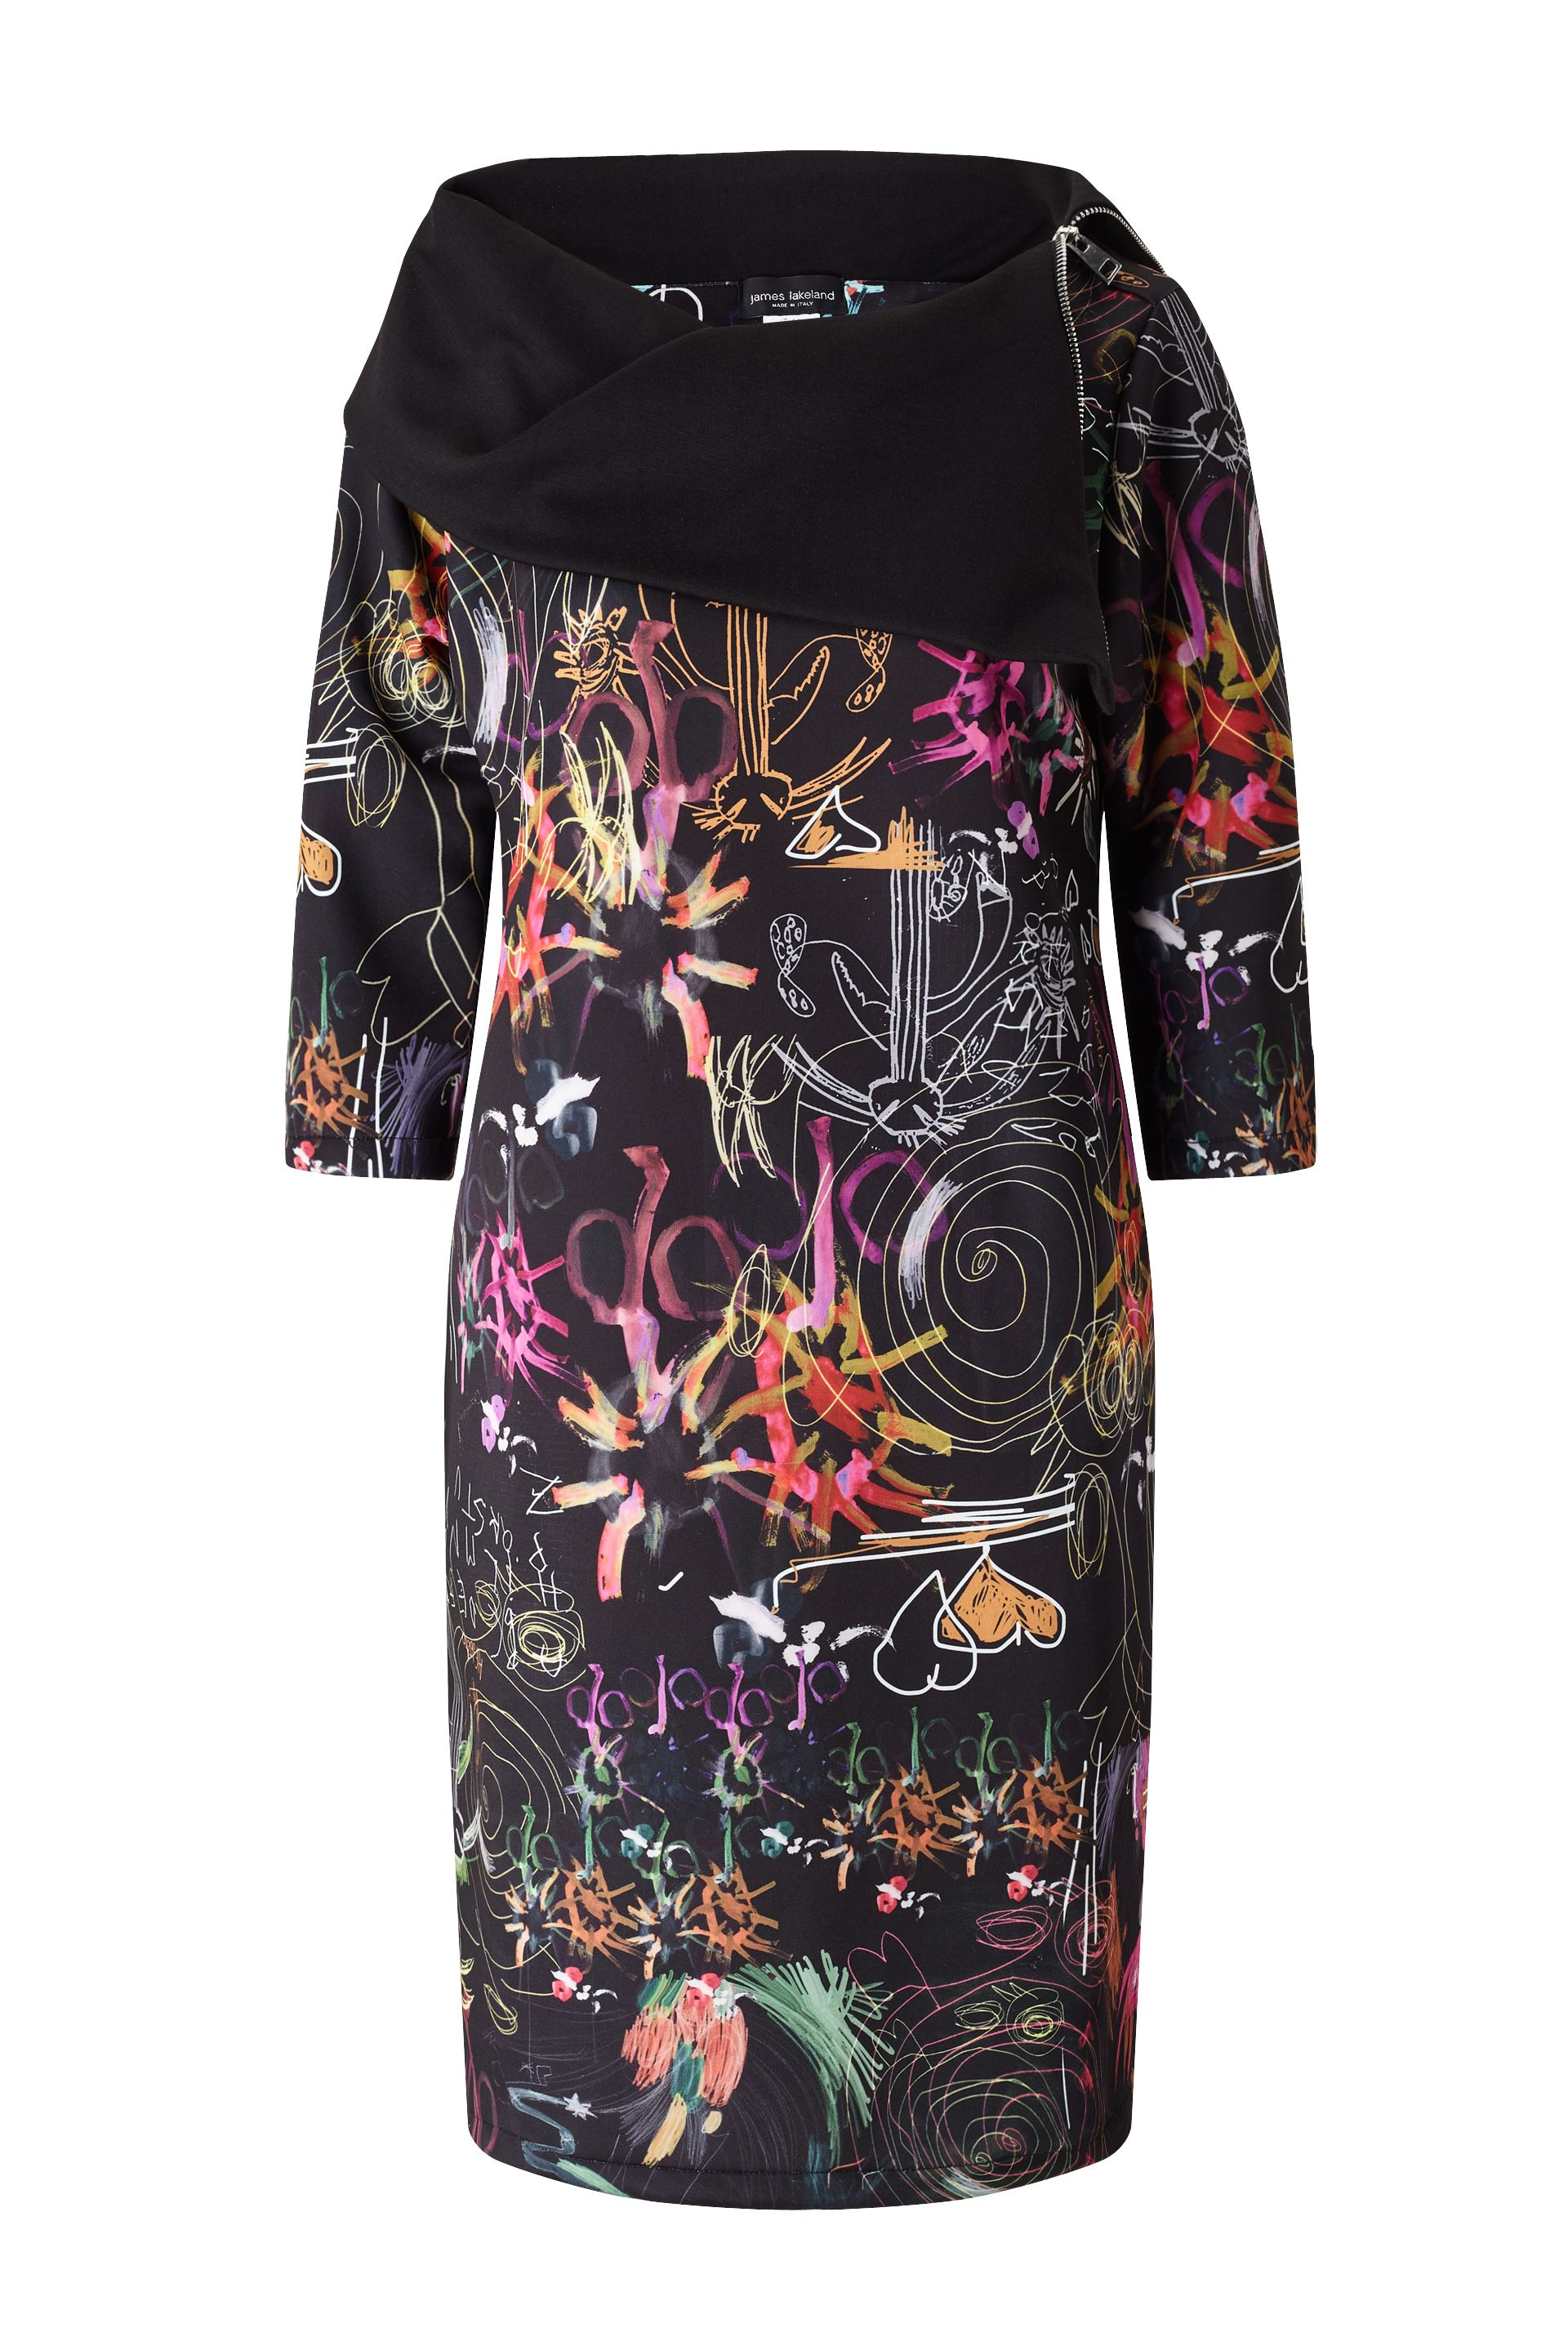 James Lakeland Printed Zip Neck Dress, Multi-Coloured